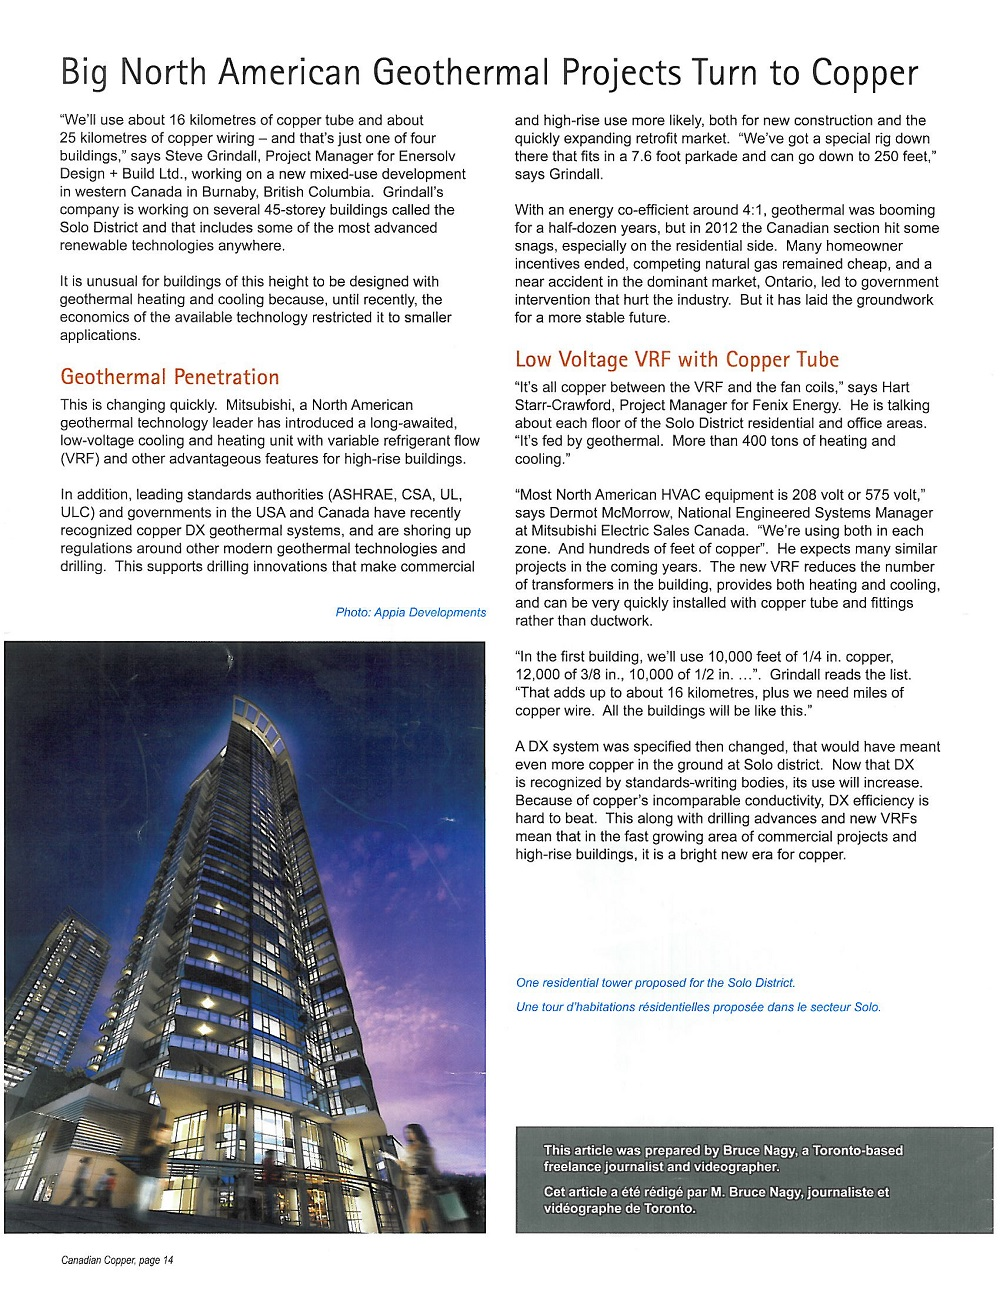 Enersolv in Canadian Copper Magazine